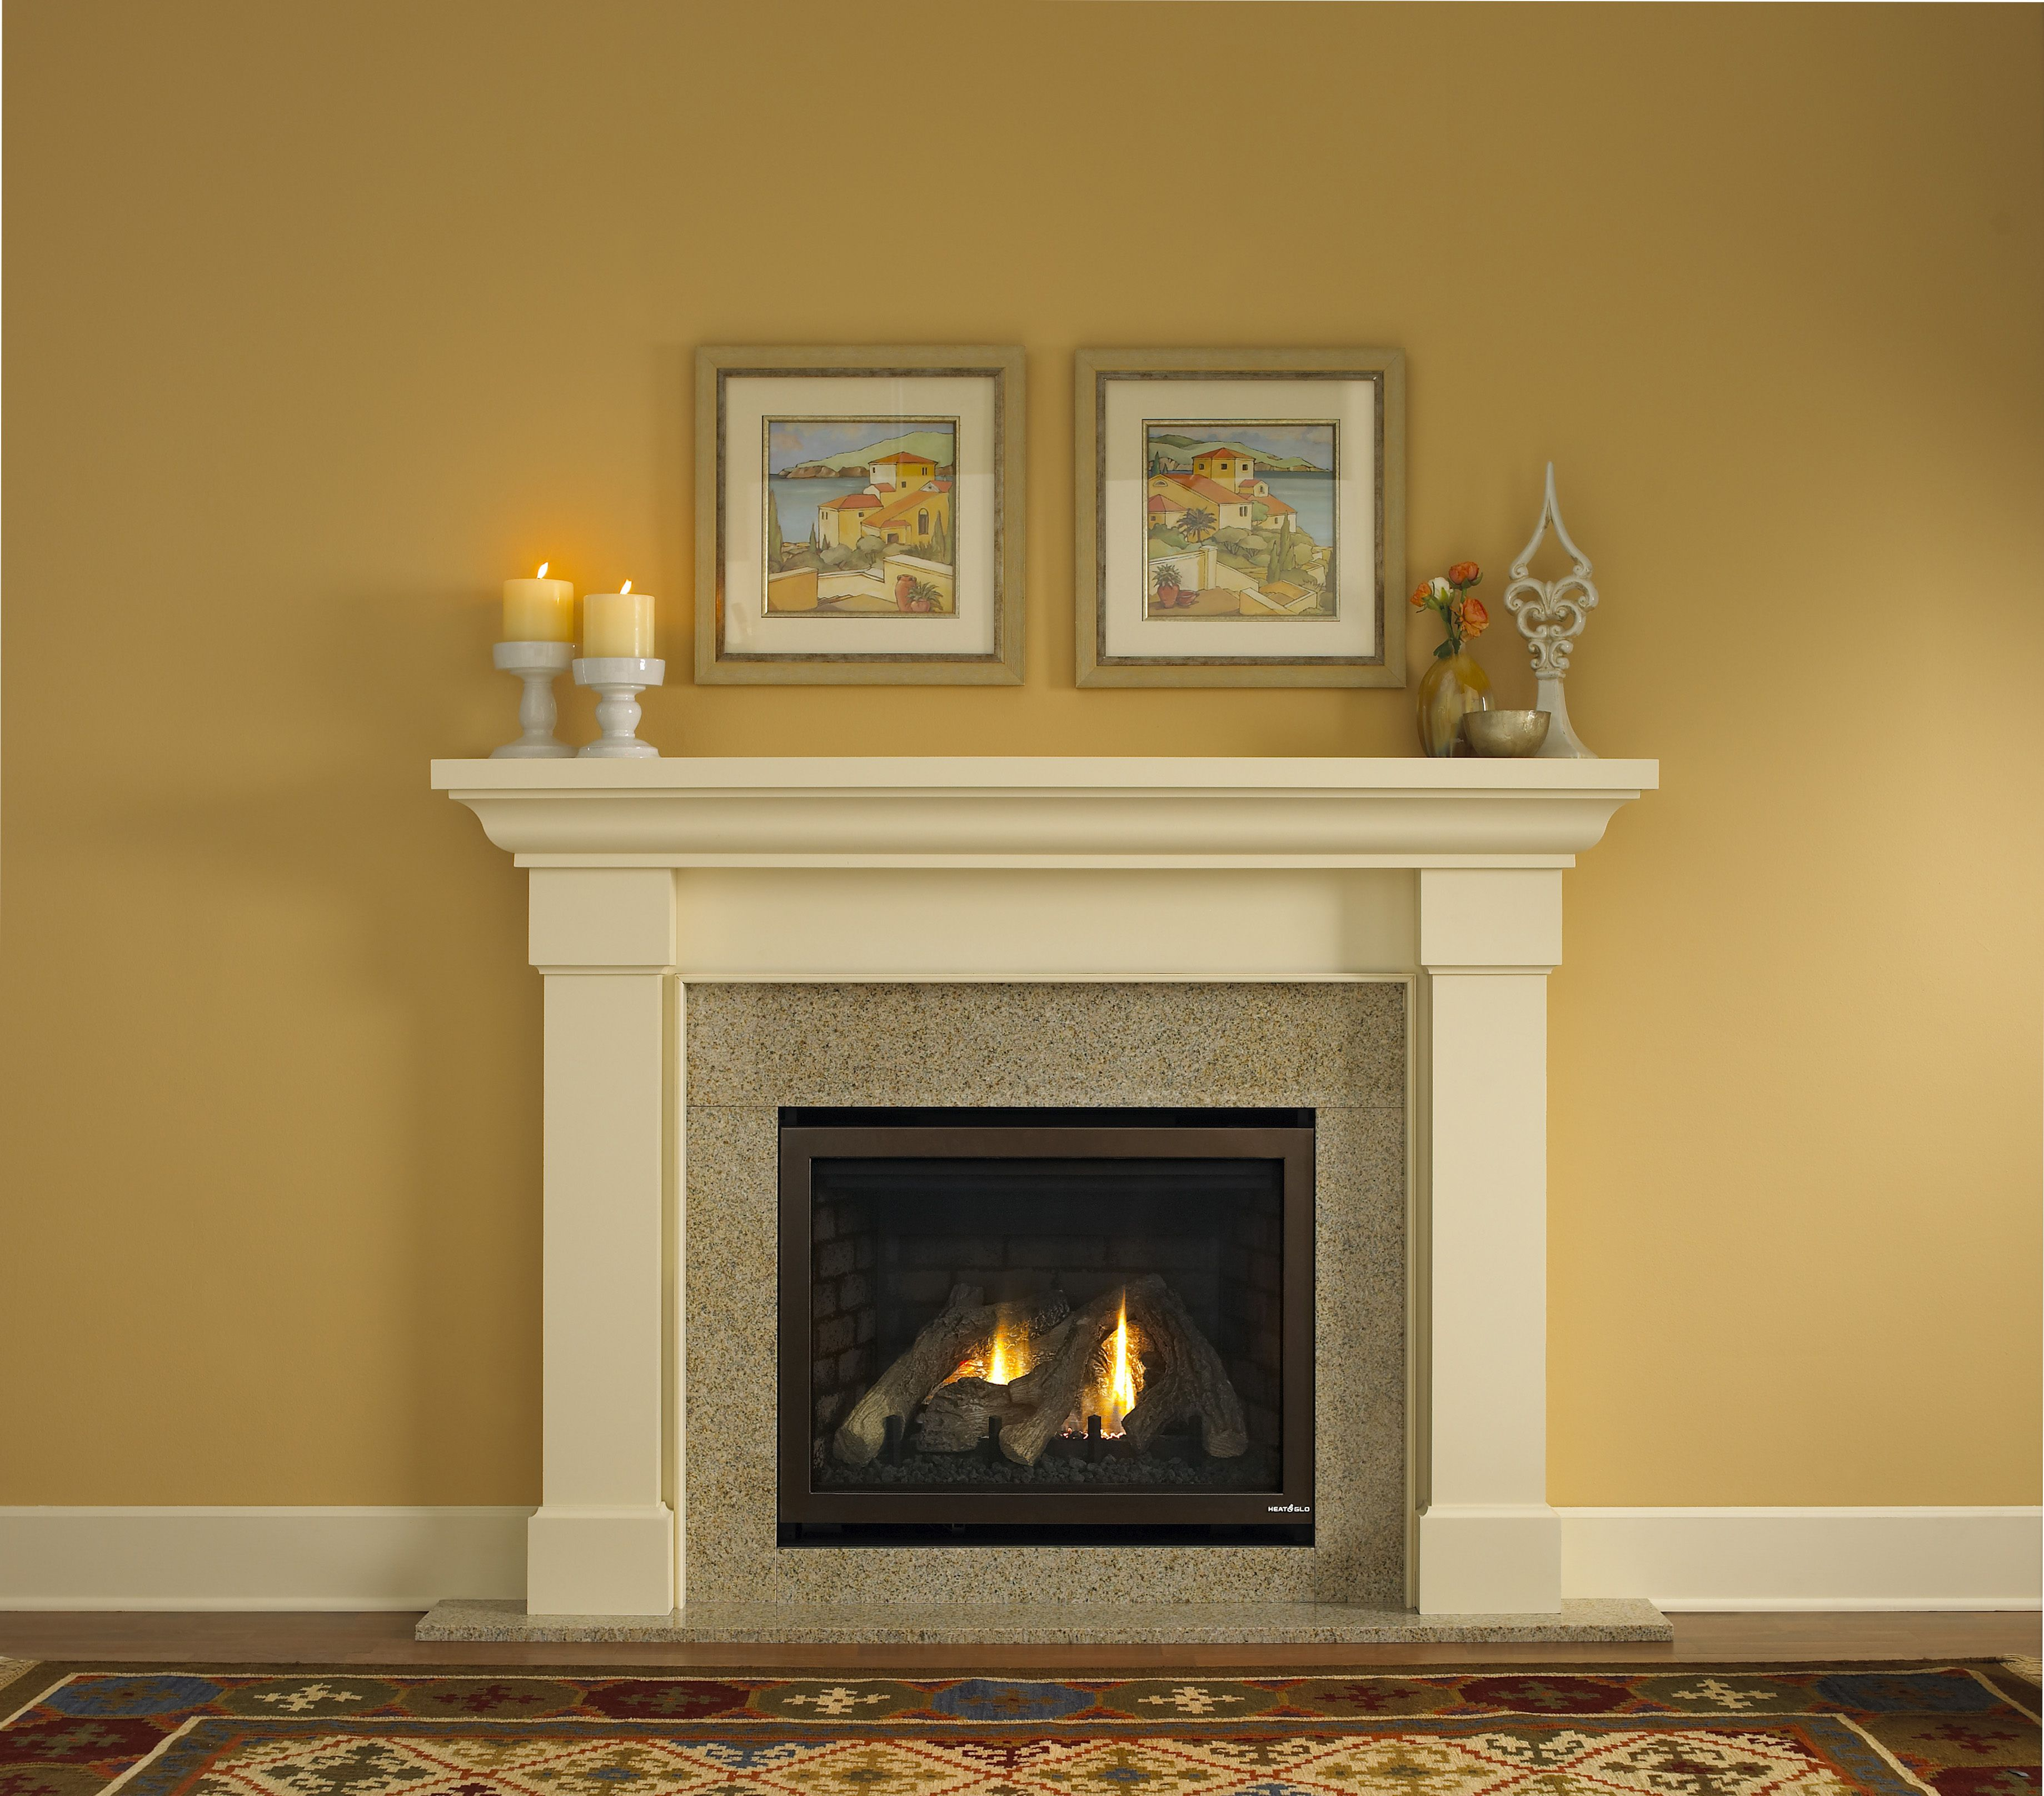 Love That Fireplaces With These White Molded Surround Mantles Are